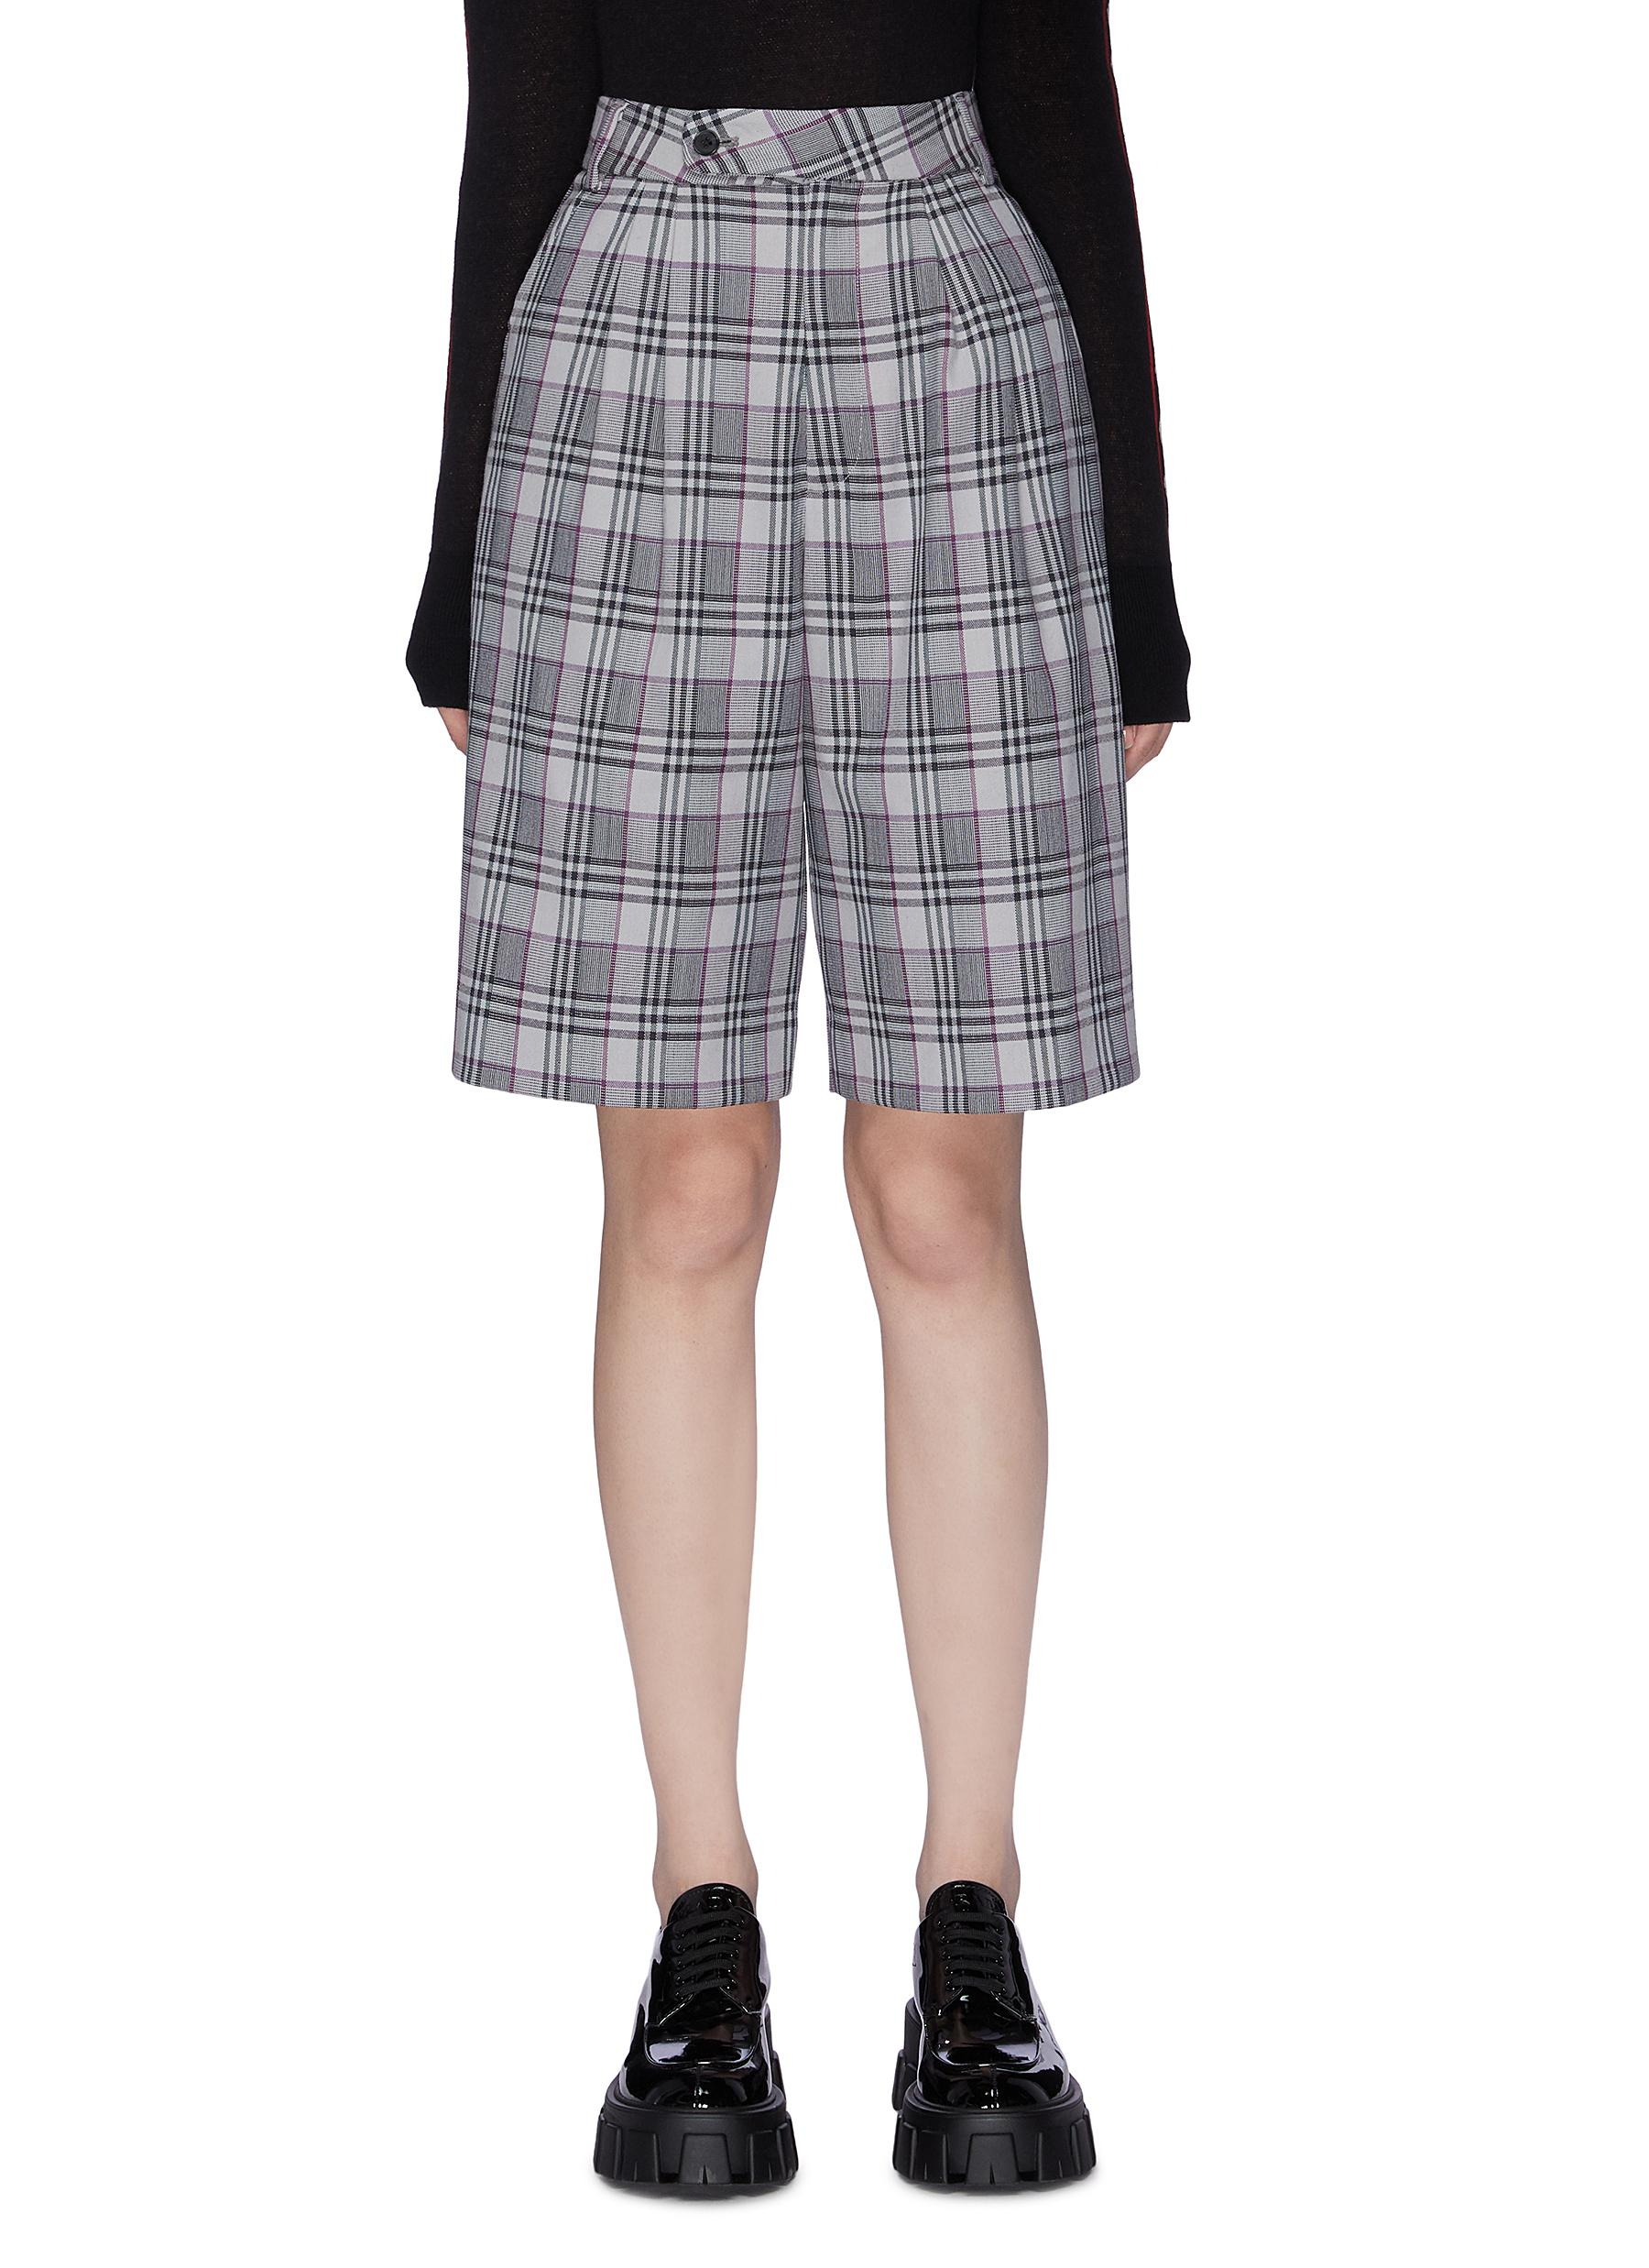 Andres check plaid shorts by Snow Xue Gao